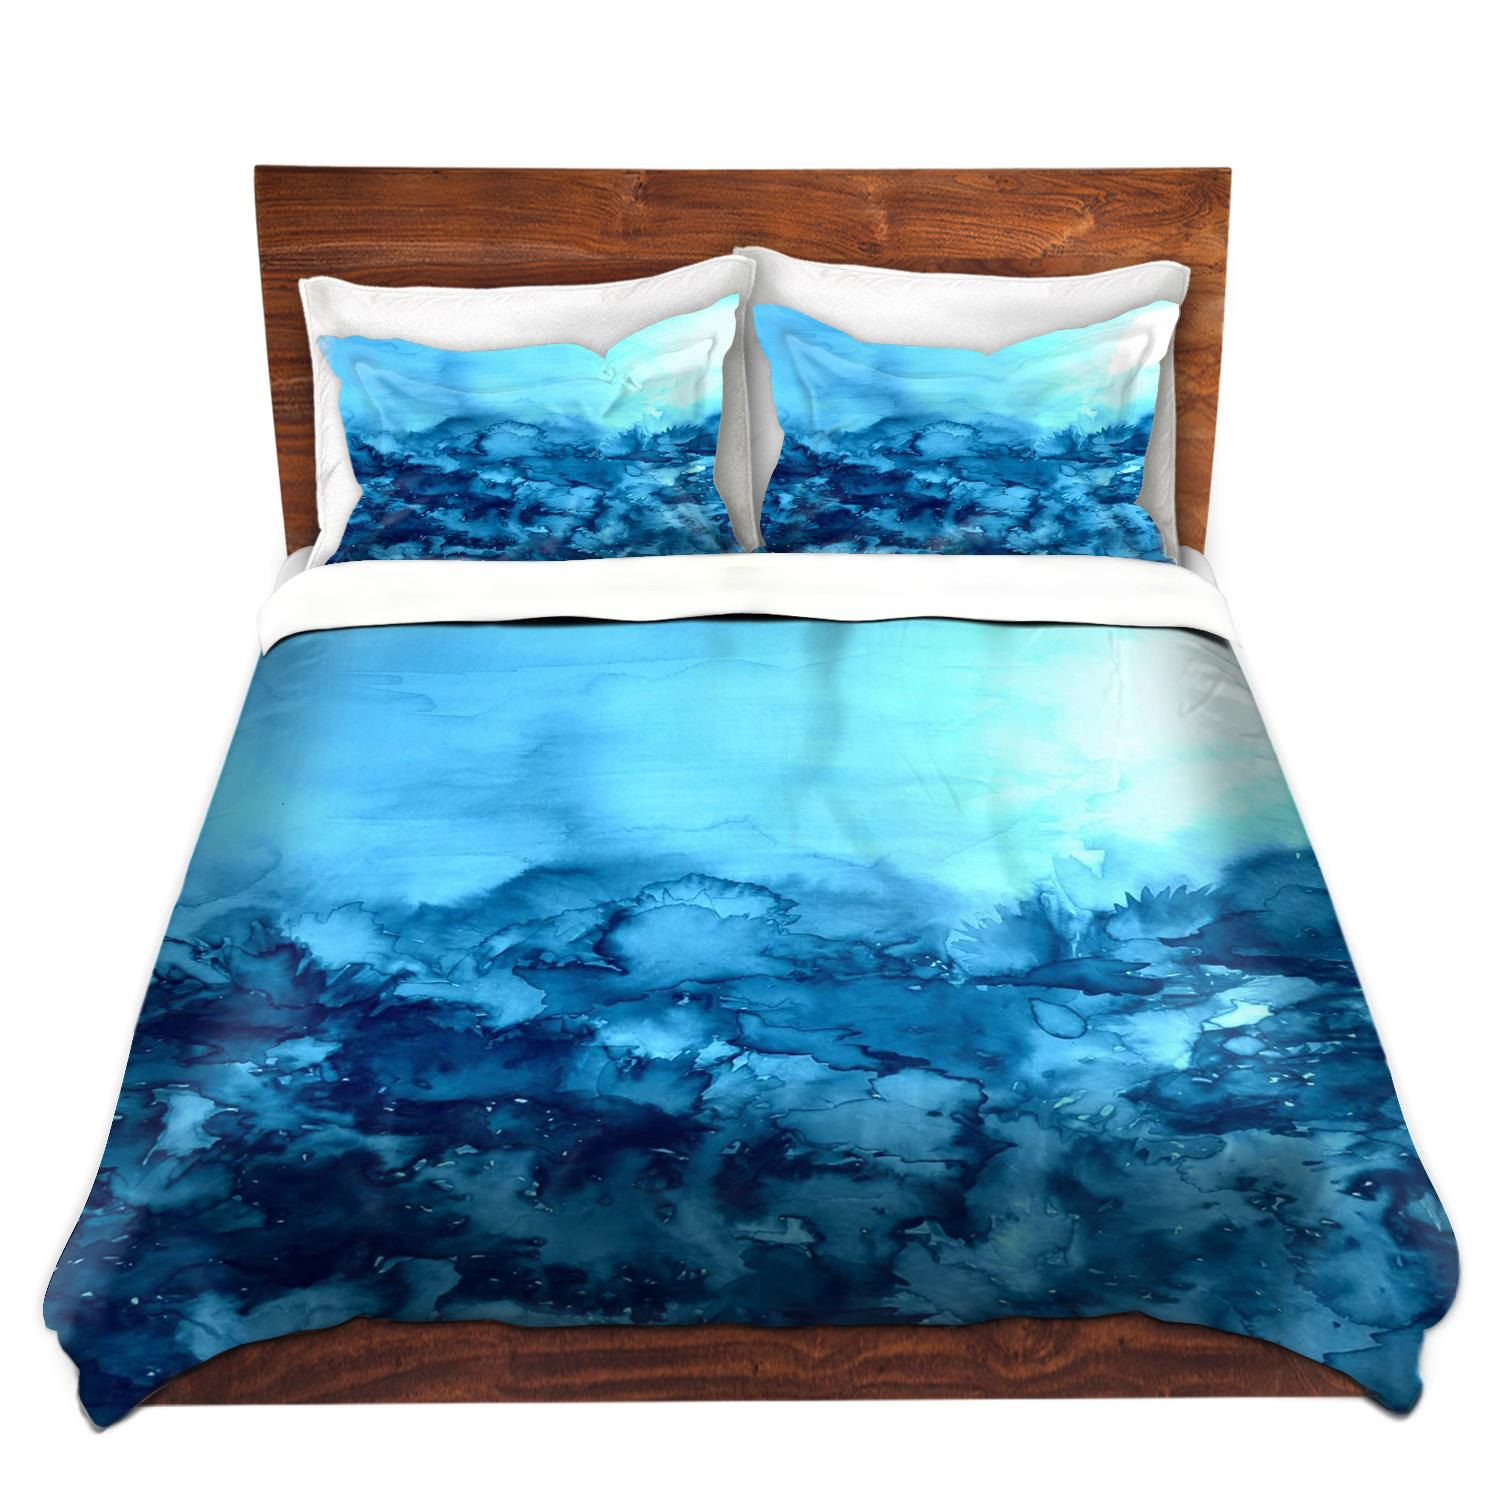 Turquoise Quilt Cover Turquoise Blue Fine Art Duvet Covers King Queen Twin